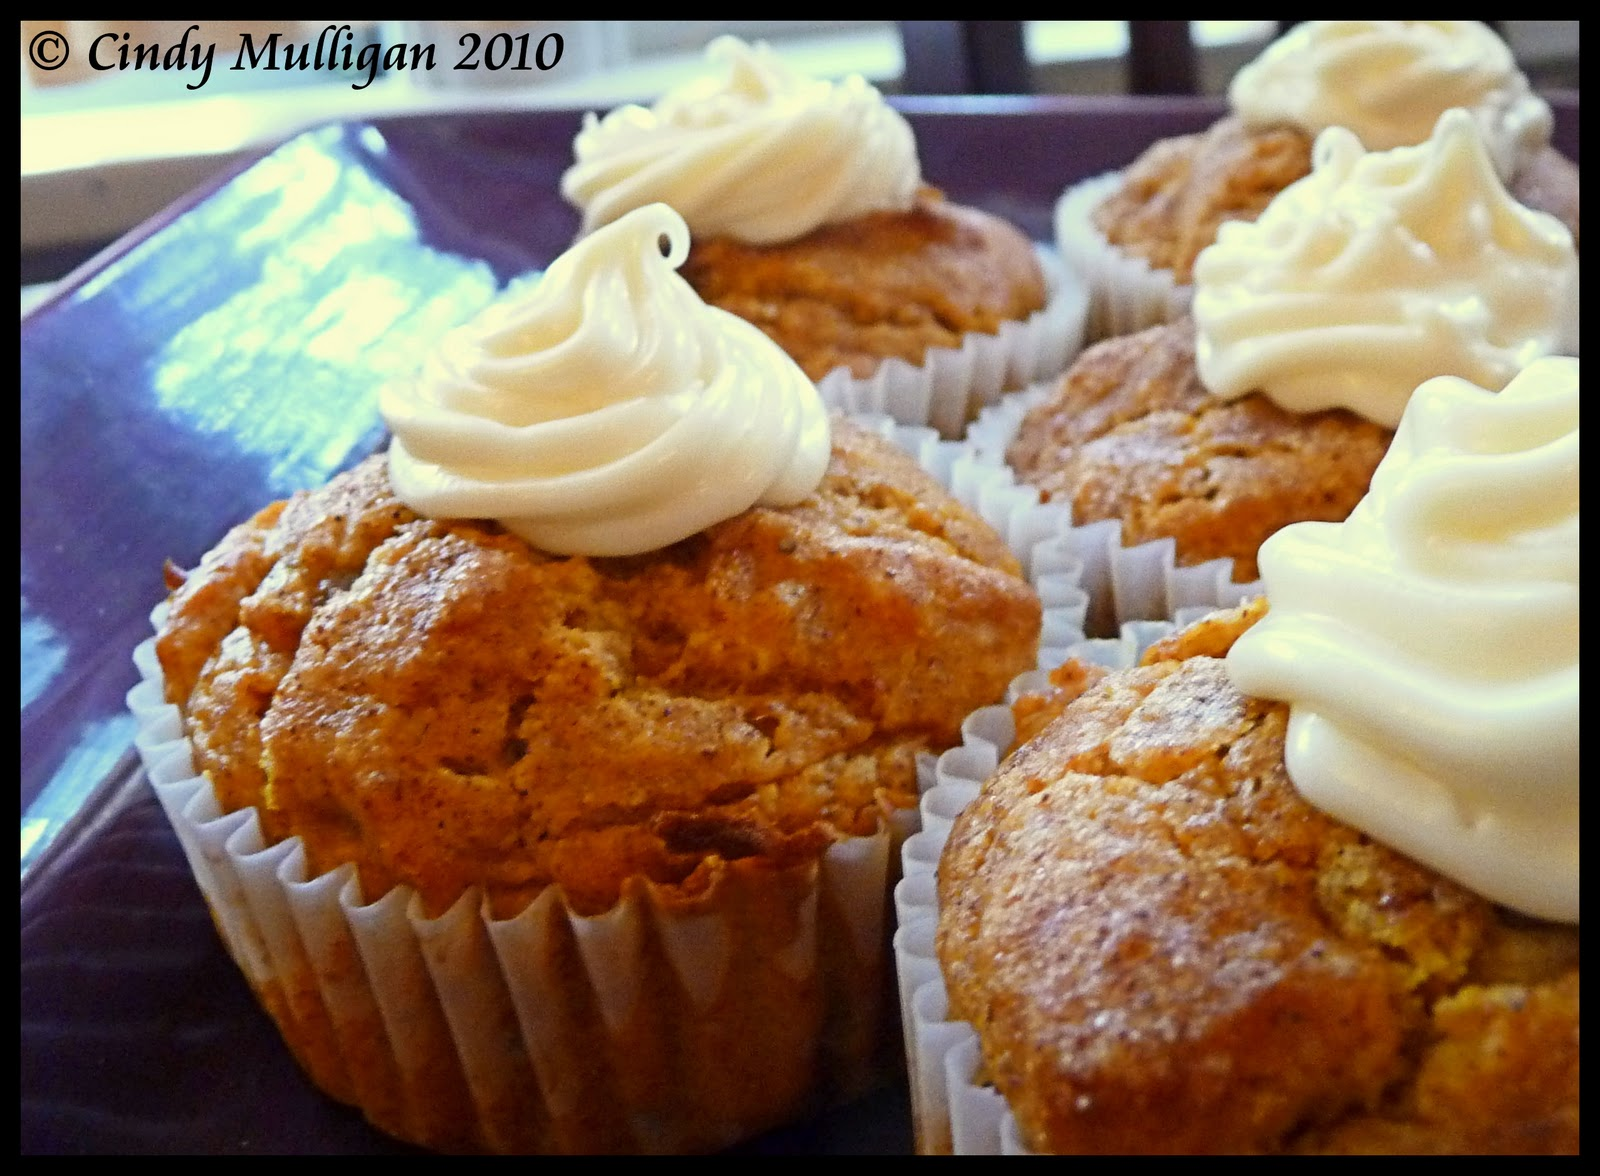 Gumbo Ya Ya: Pumpkin Spice Muffins with Cream Cheese Frosting